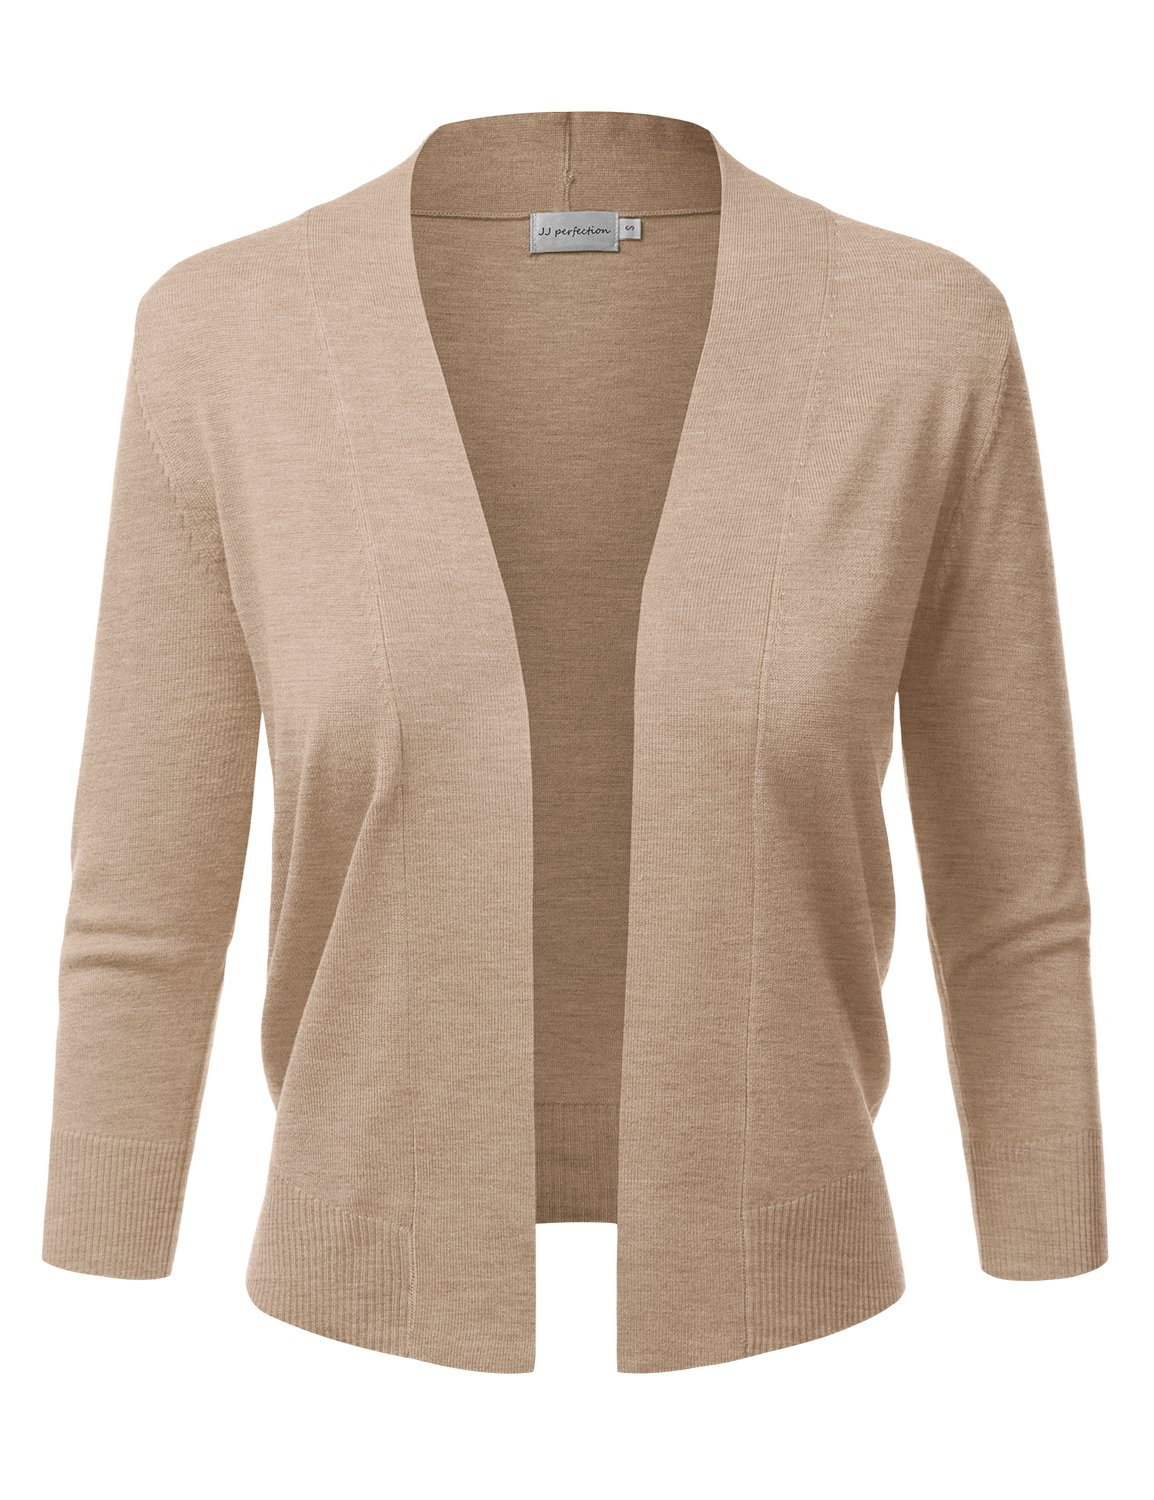 JJ Perfection Women's Basic 3/4 Sleeve Open Front Cropped Cardigan Khaki L